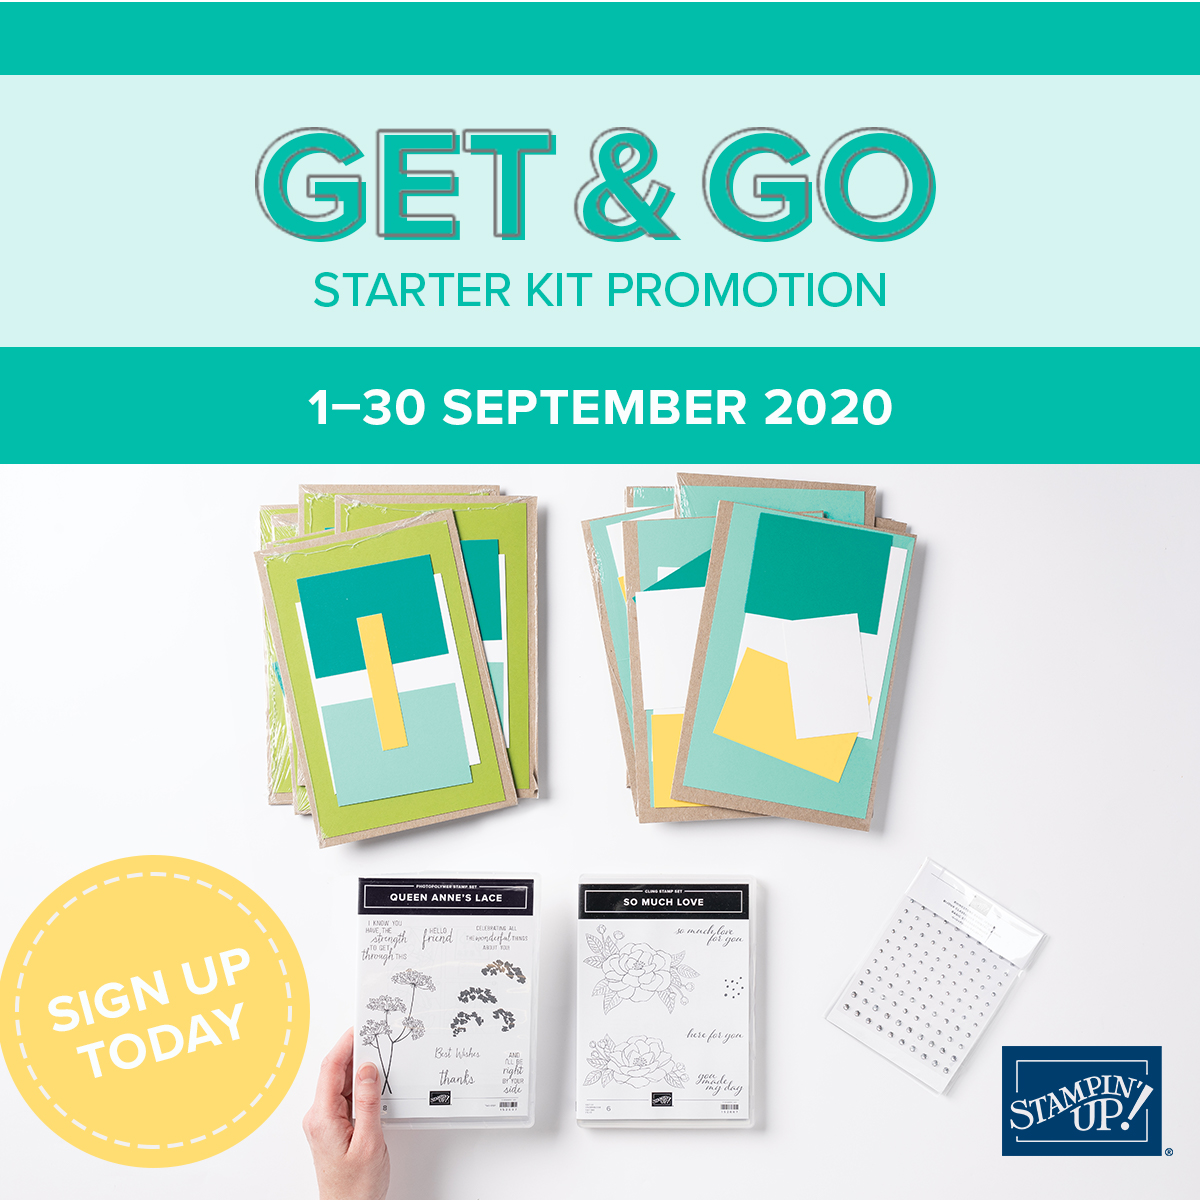 Get & Go Starter Kit Promotion September 1-30 2020